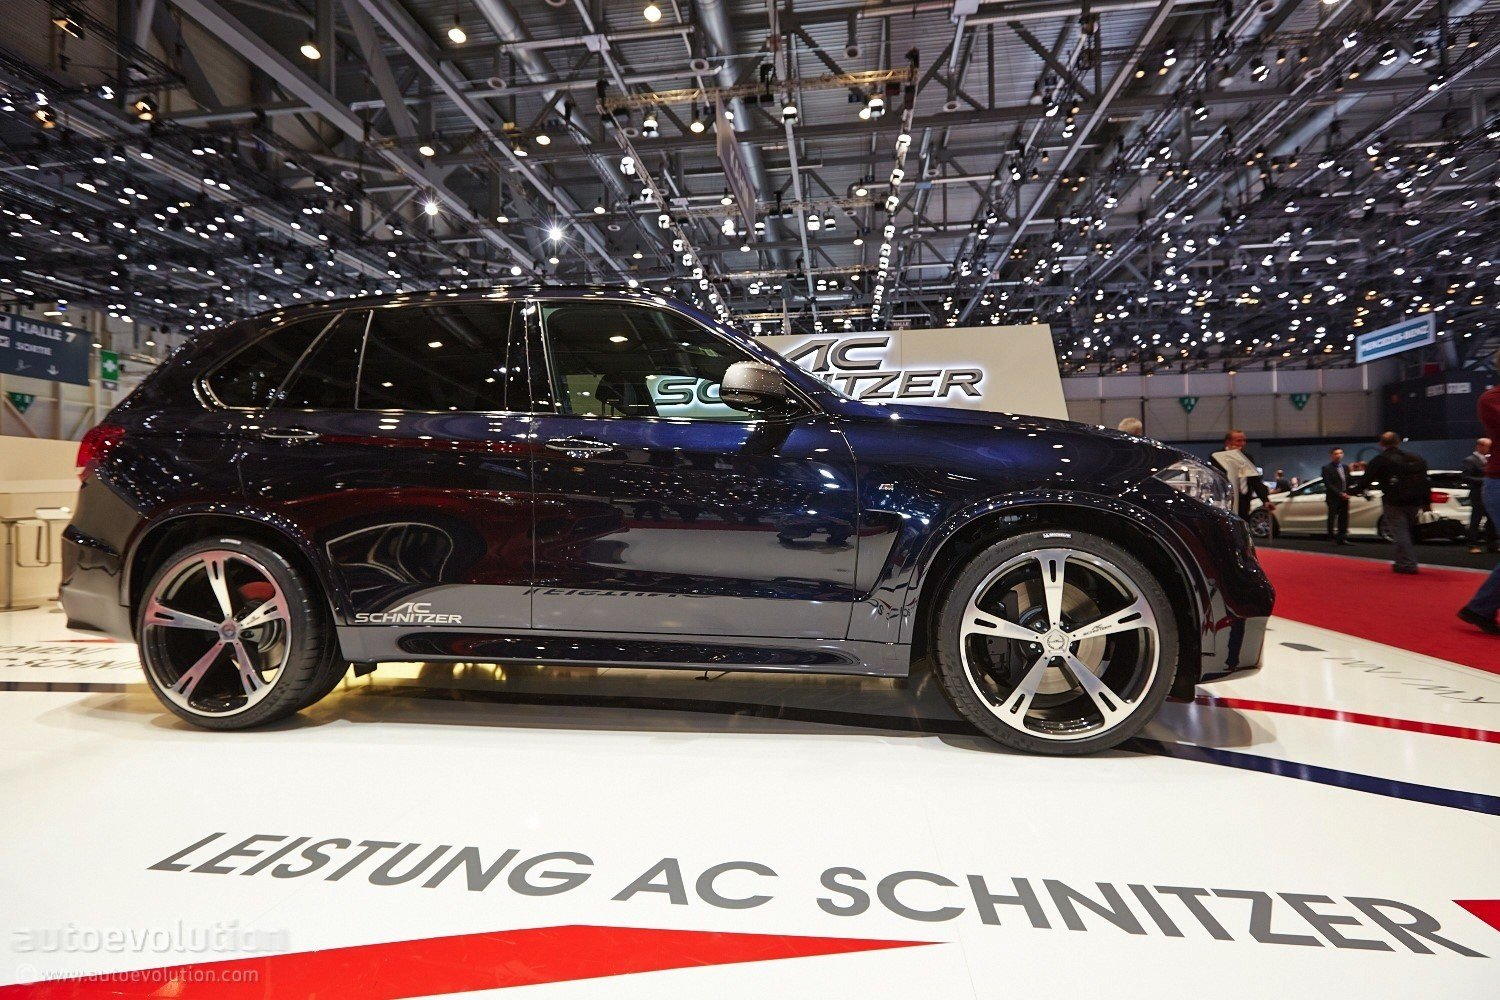 Latest Ac Schnitzer Bmw X5 M50D Shines Bright In Geneva Live Free Download